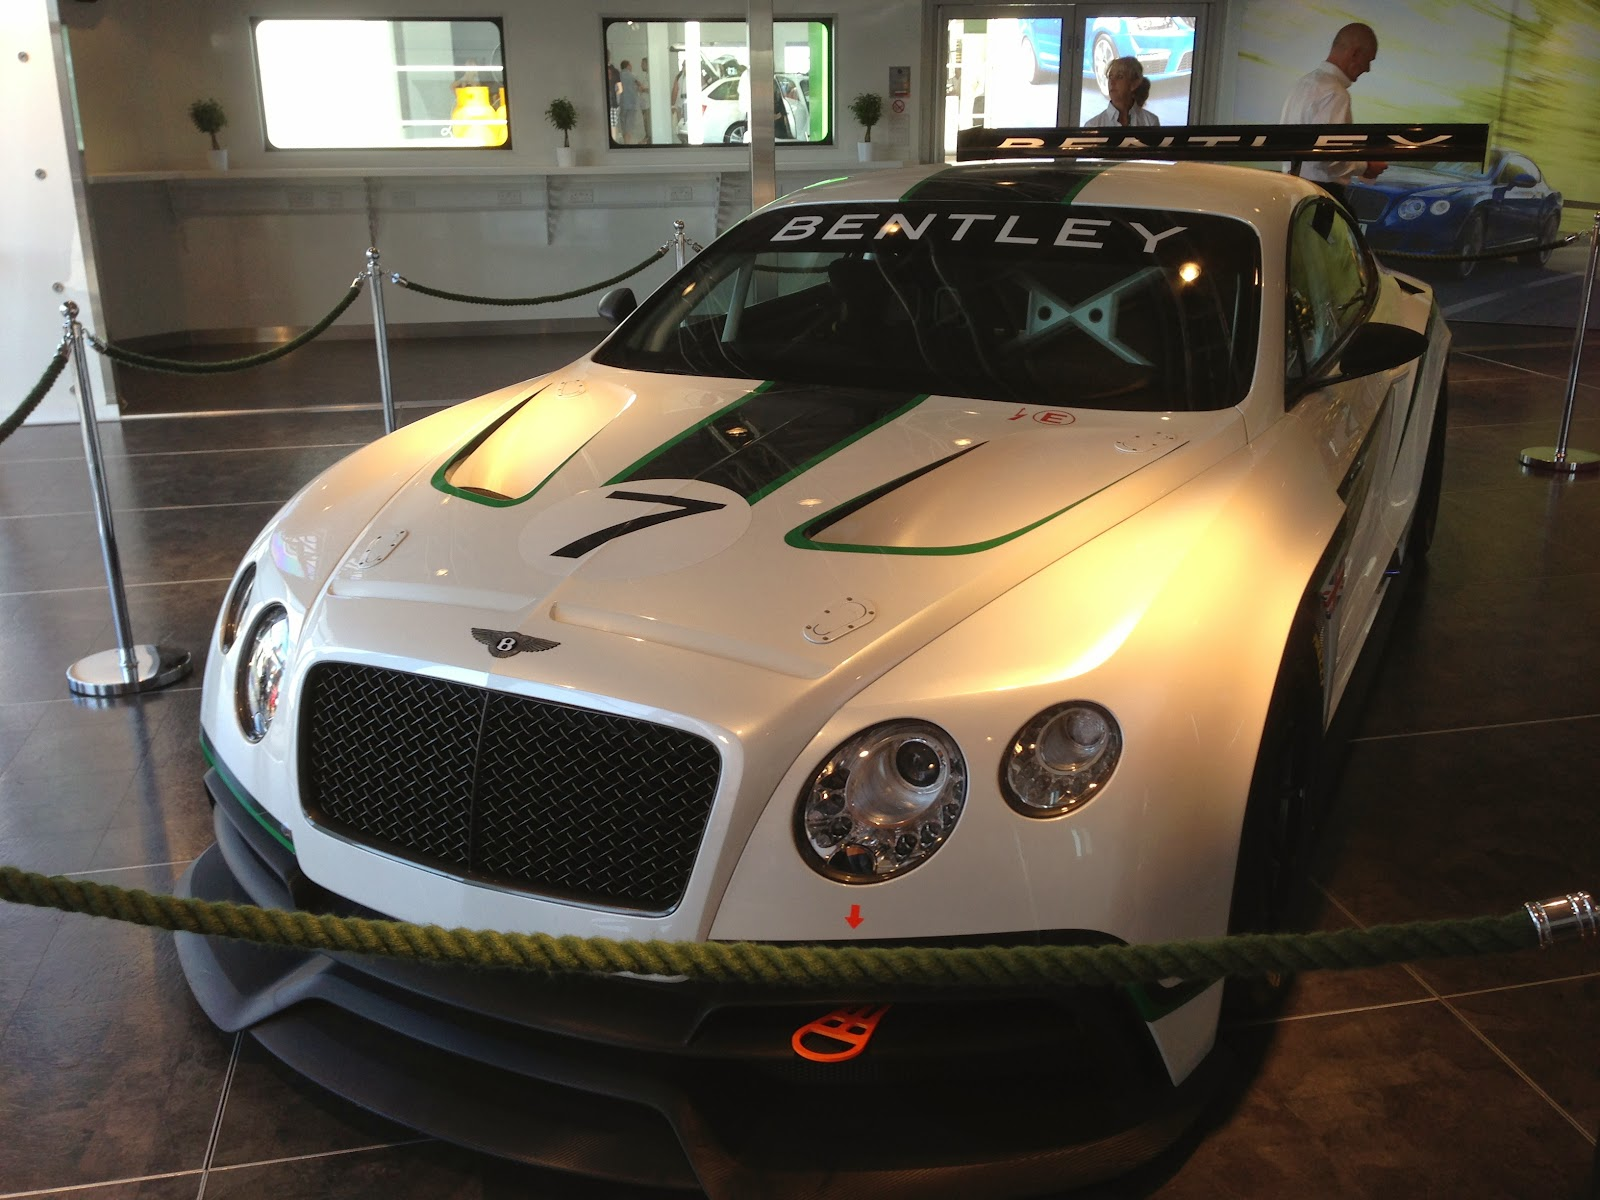 Bentley Continental GT3 at Goodwood Festival of Speed